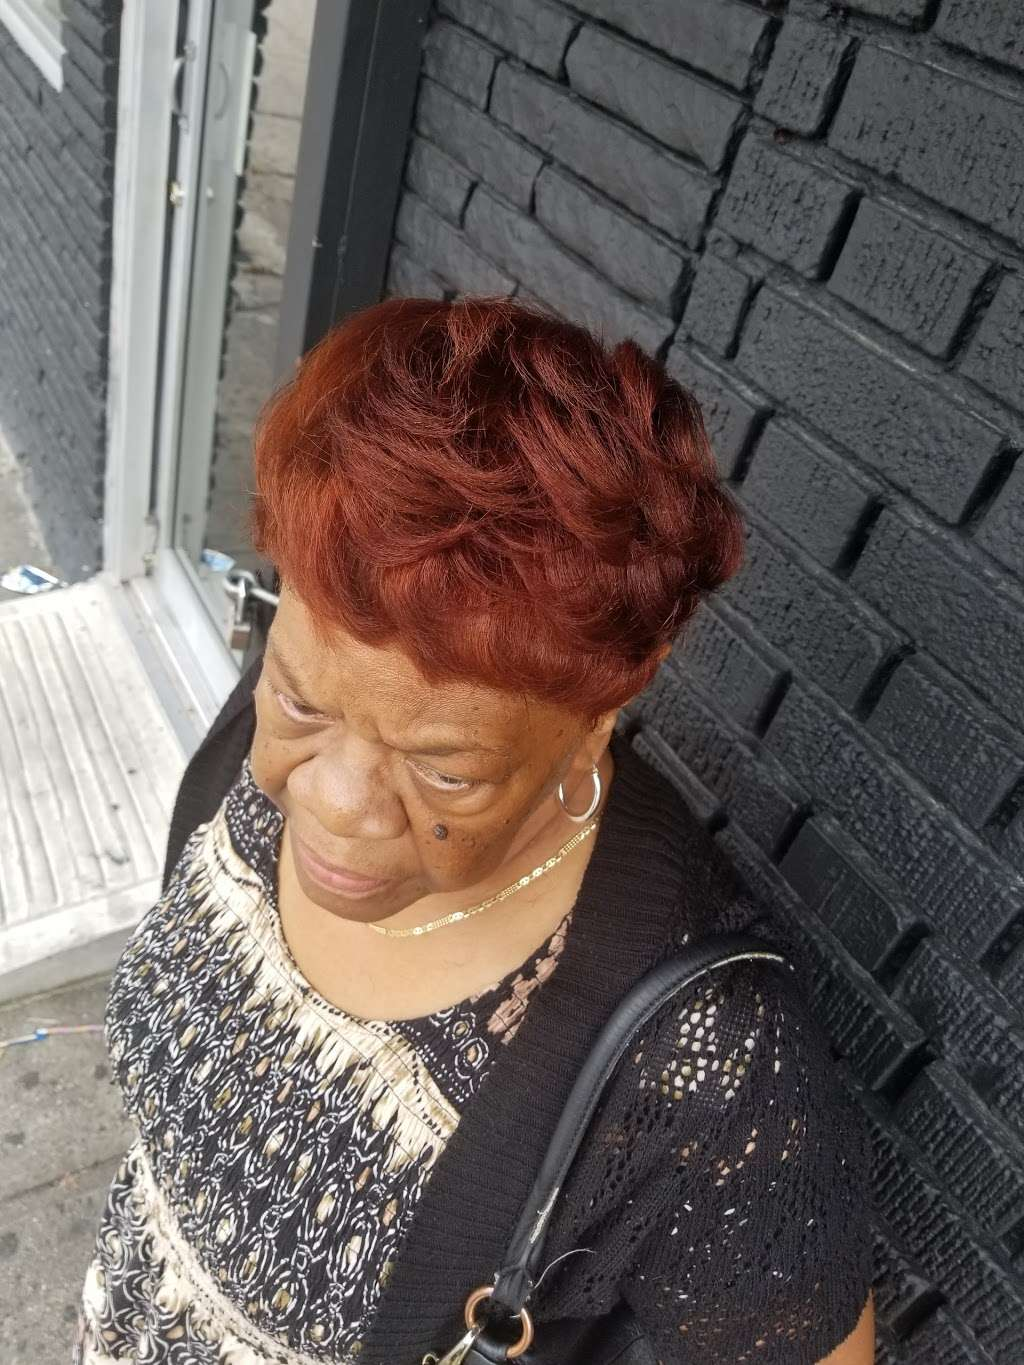 loveable stylez studio - hair care  | Photo 4 of 6 | Address: 2512 Foster Ave, Brooklyn, NY 11210, USA | Phone: (718) 313-5370